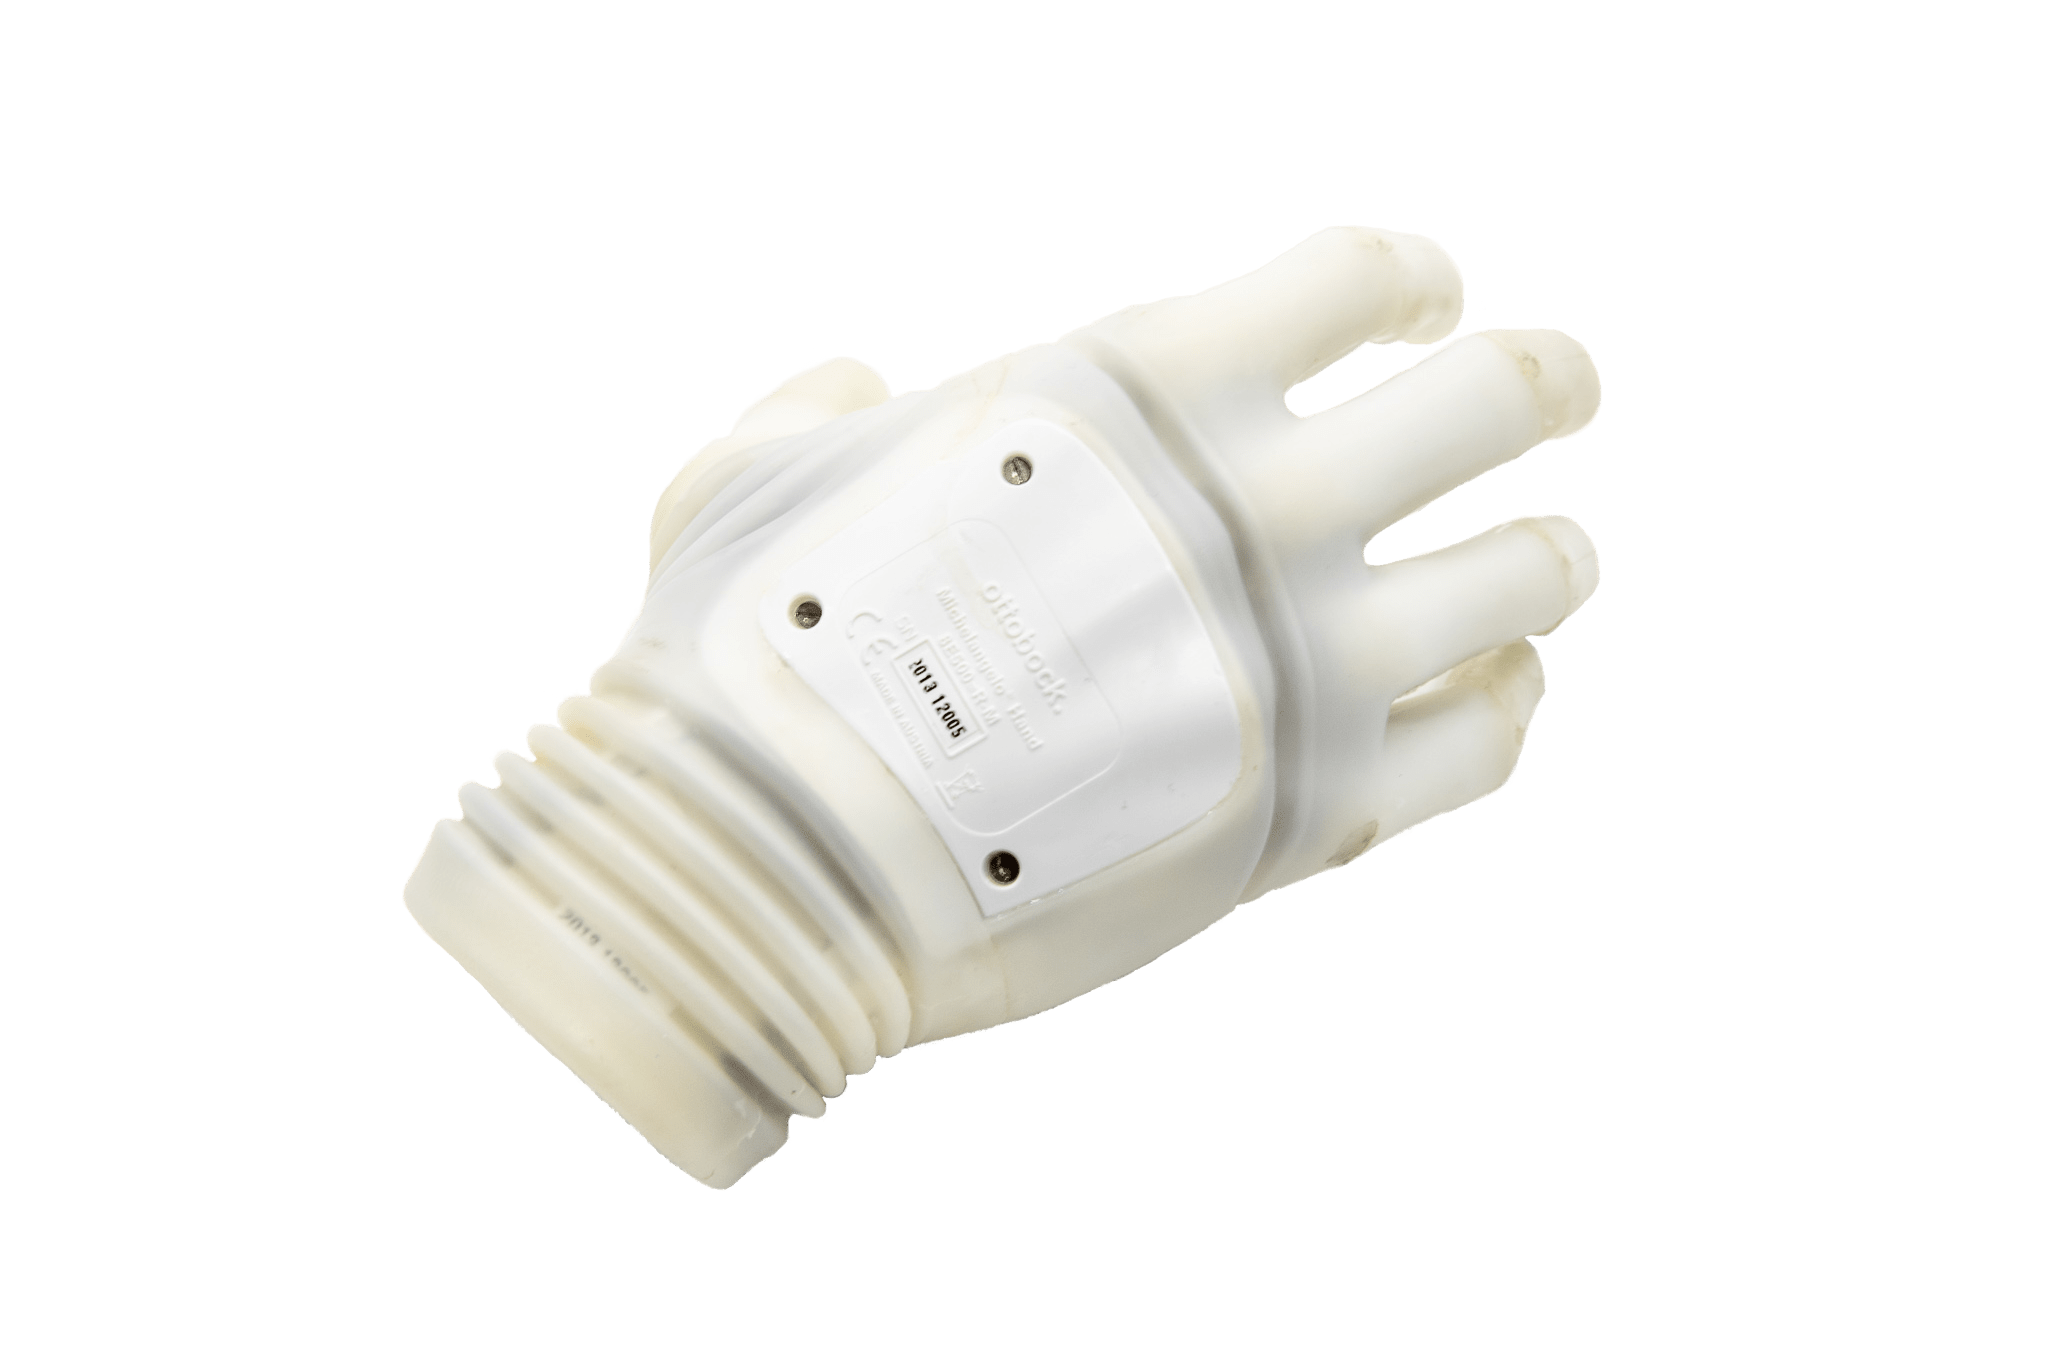 The side view of a prosthetic hand.